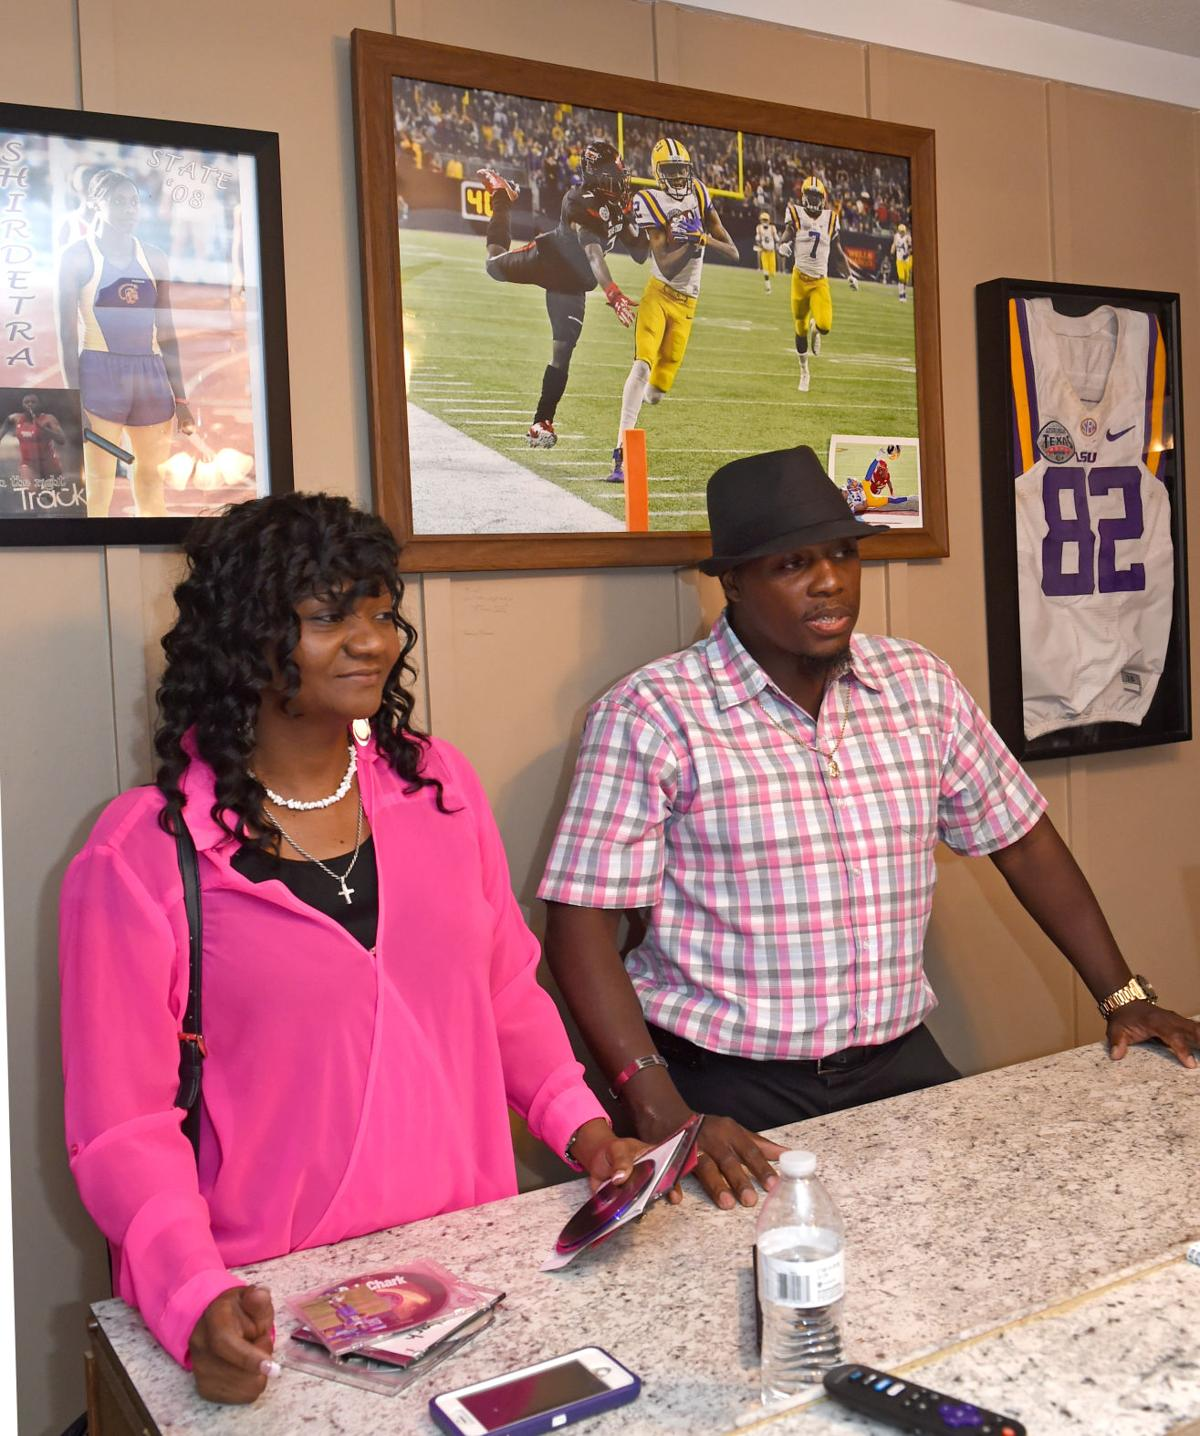 Dj Chark S Story Top Lsu Receiver Saved Dad Cared For Ailing